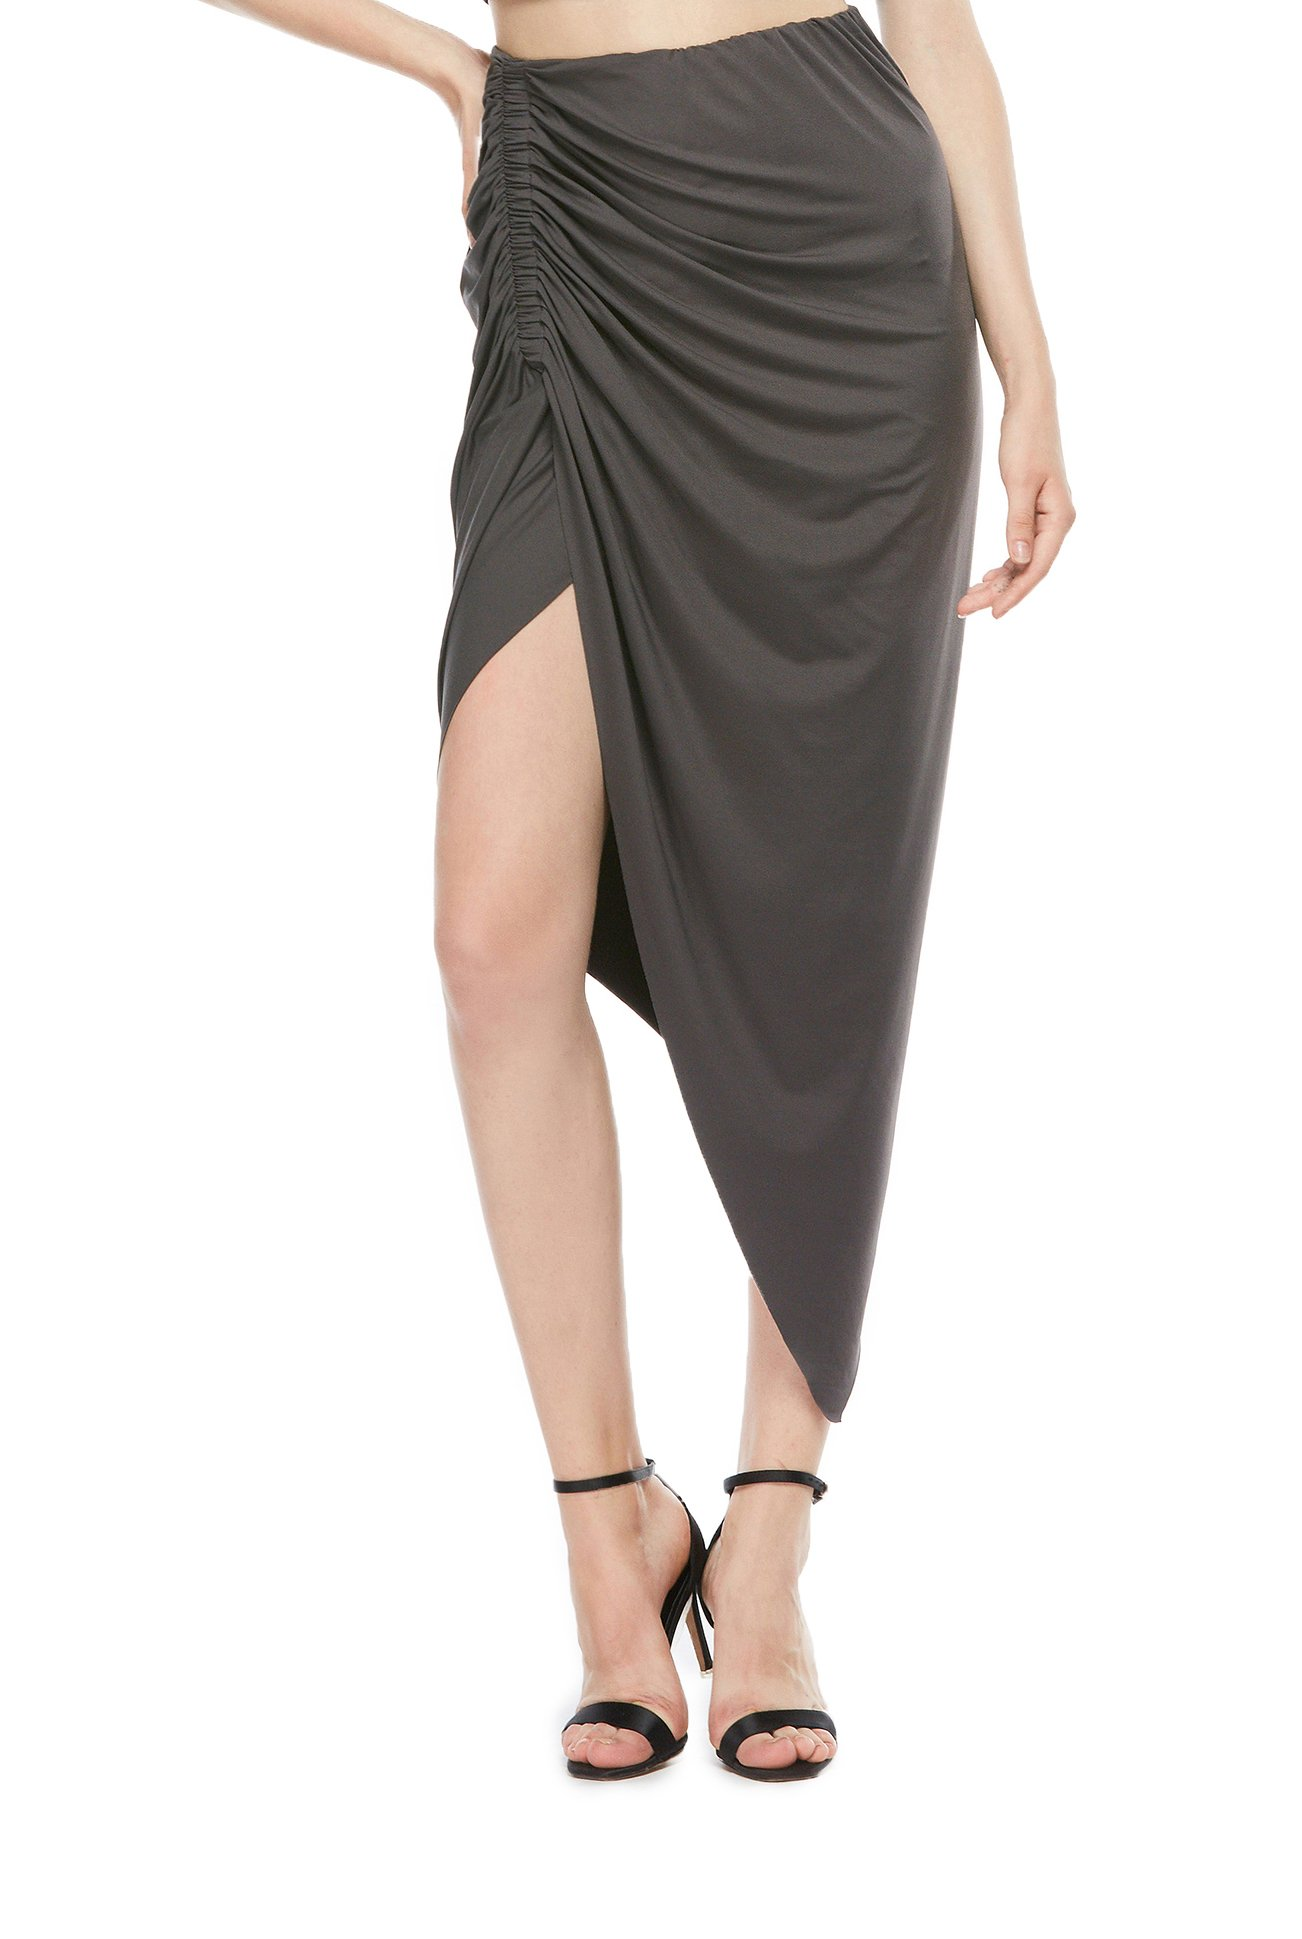 DISBEST Women's High-Low Cut Out Asymmetric Stretchy Pencil Pack Hip Long Midi Bodycon Skirt,Gray,M/US 6